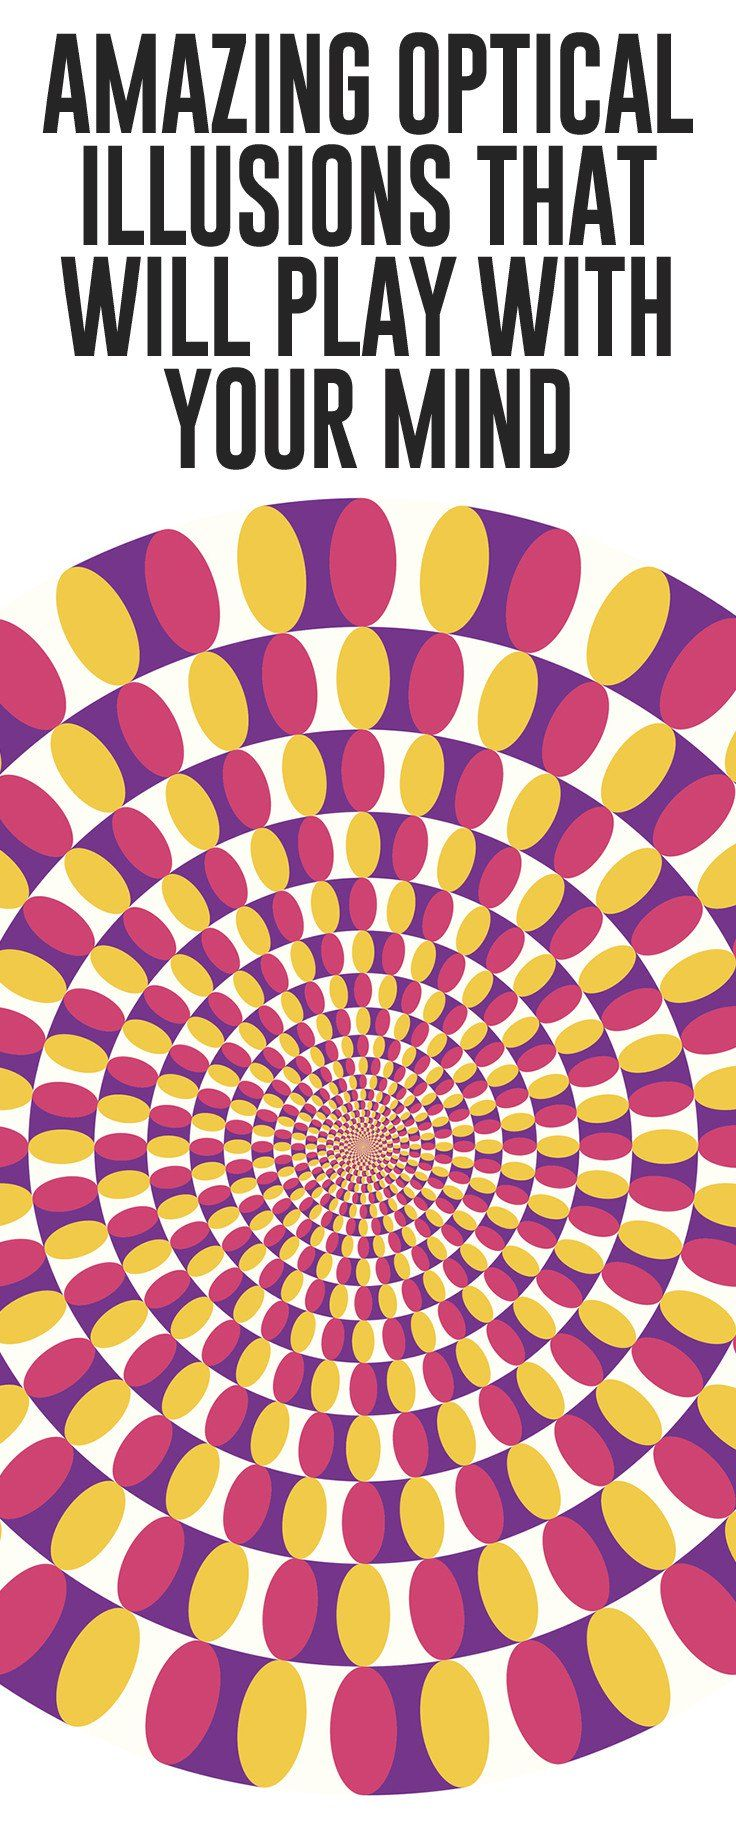 Is it moving? Or is it not? Have a look at the optical illusions that will leave your mind confused.